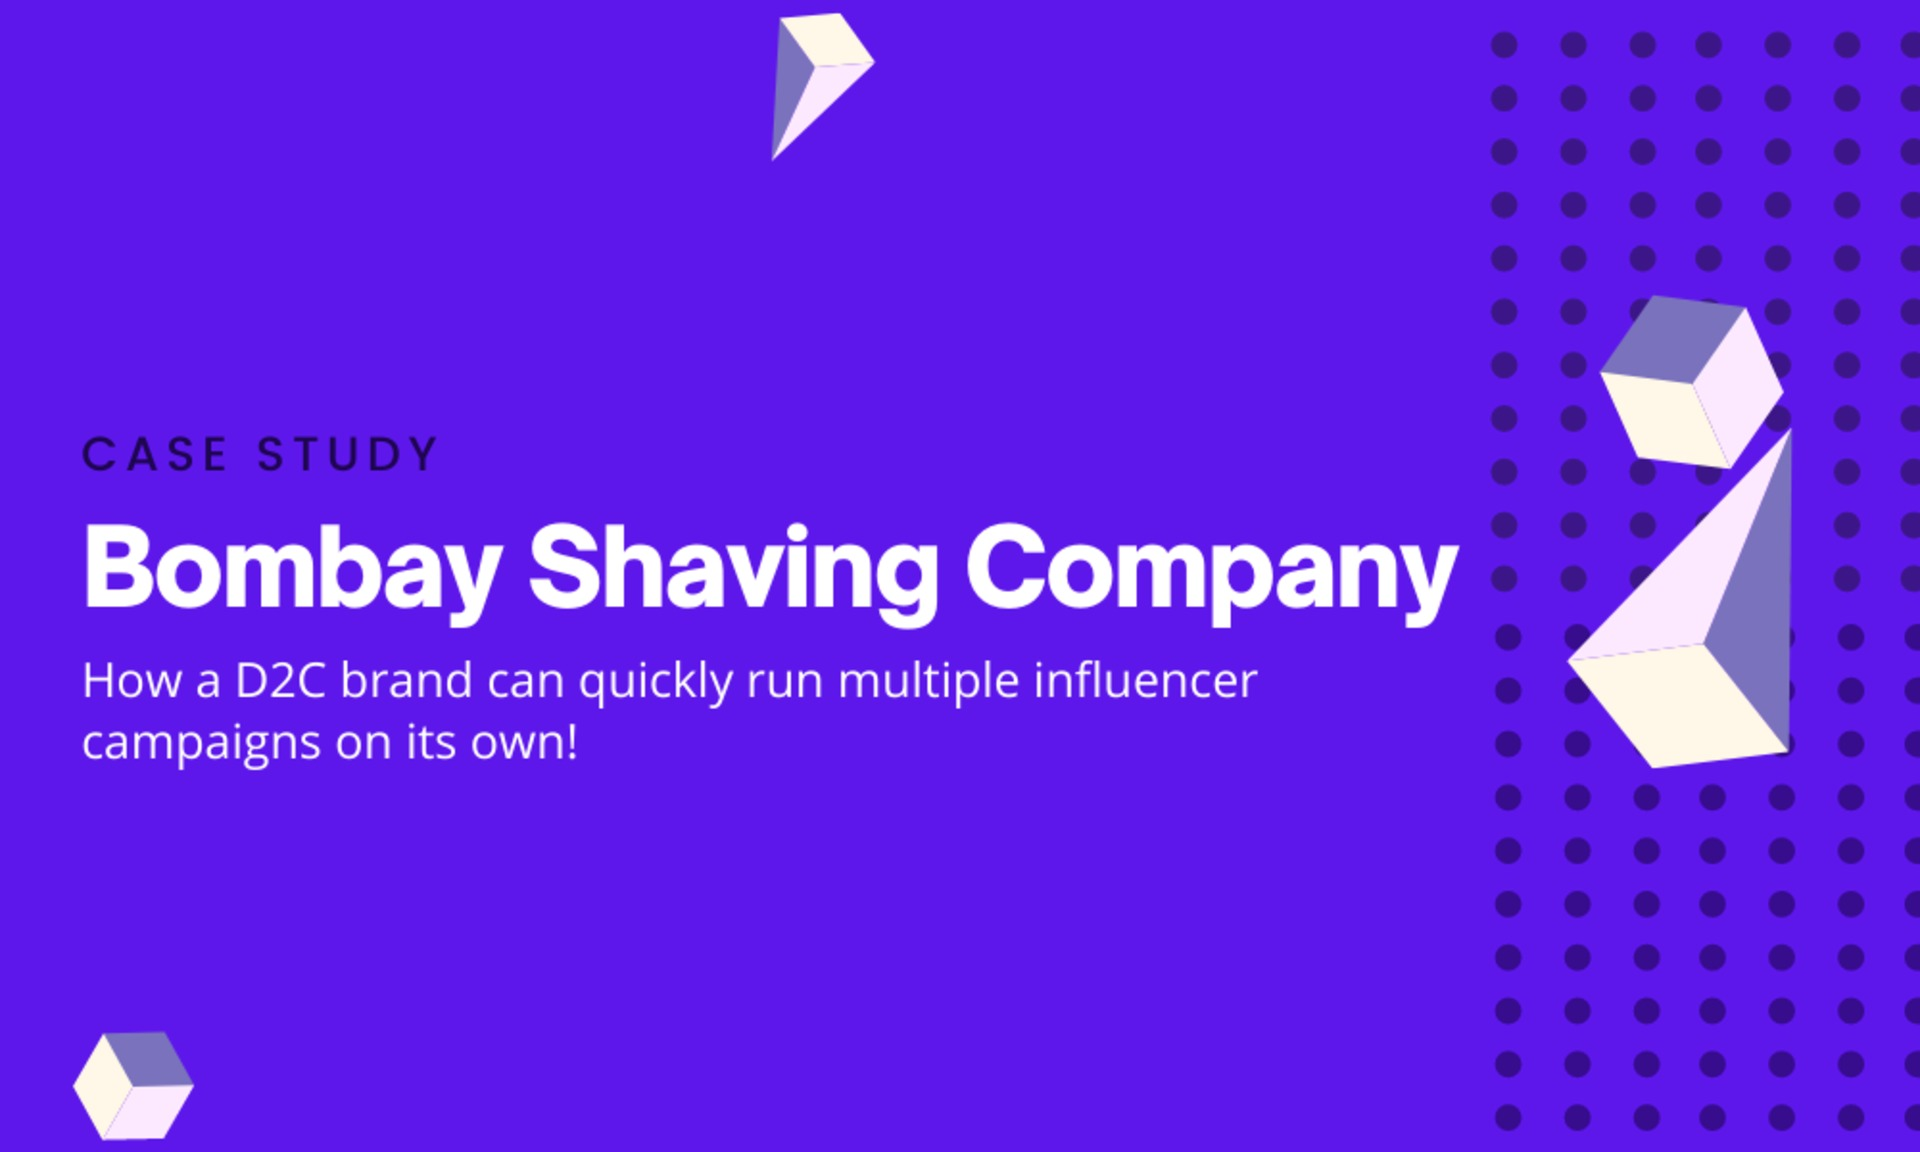 How a D2C brand can quickly run multiple influencer campaigns on its own! image